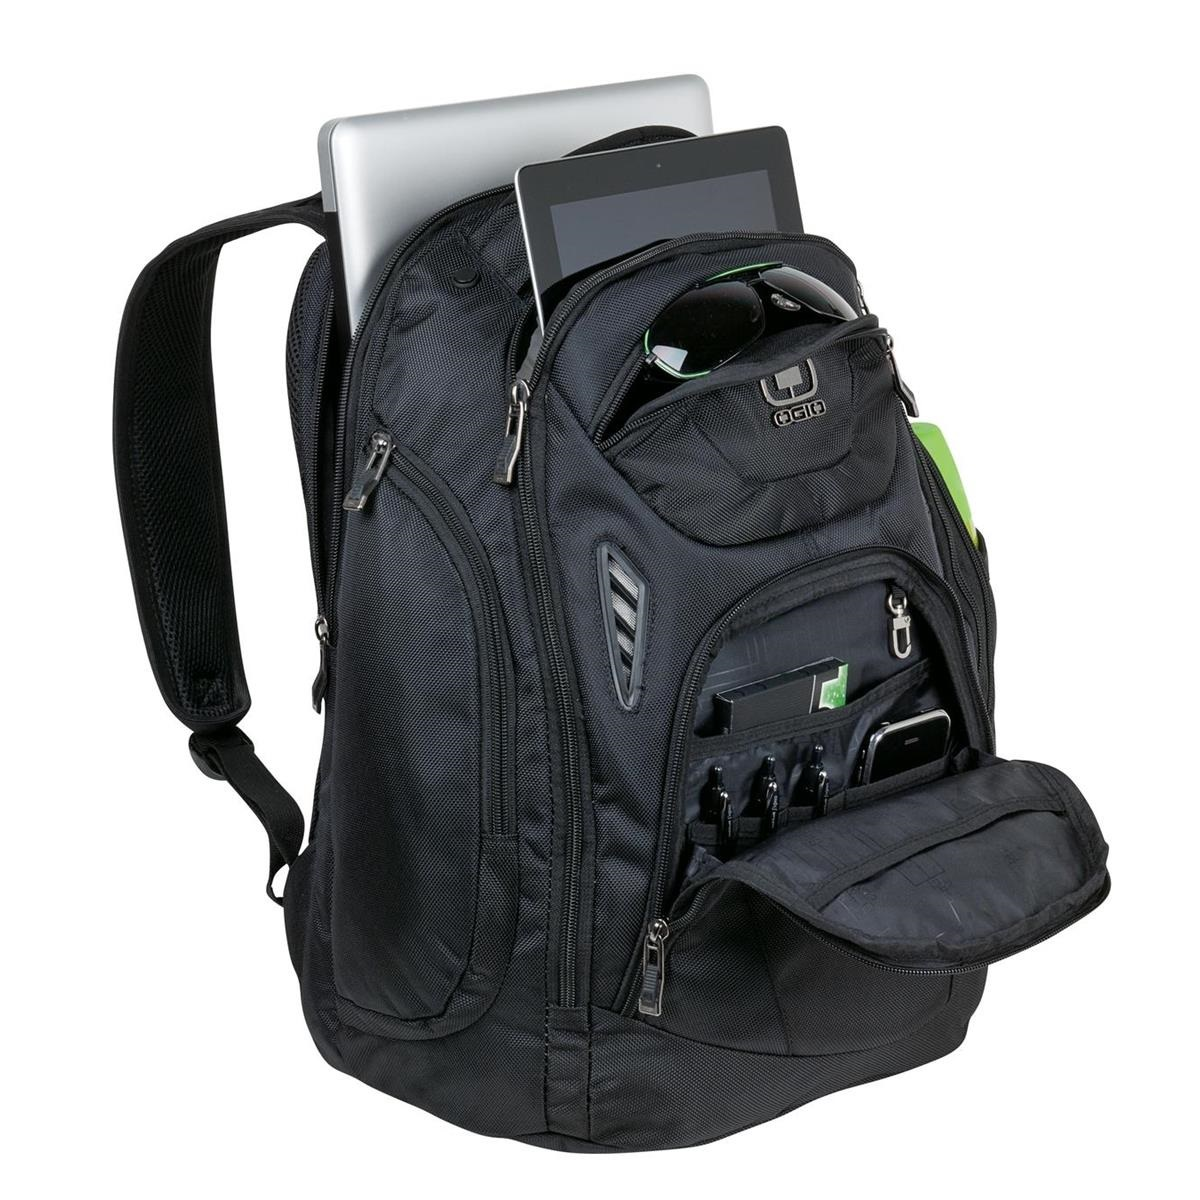 New Ogio 9800 Moto Gear Bag Le Red Hub besides 311825999144 as well Golf Push Cart Accessories also Ogio 702143 also Rig 9800 Gear Bag By Ogio. on ogio cart bag sale